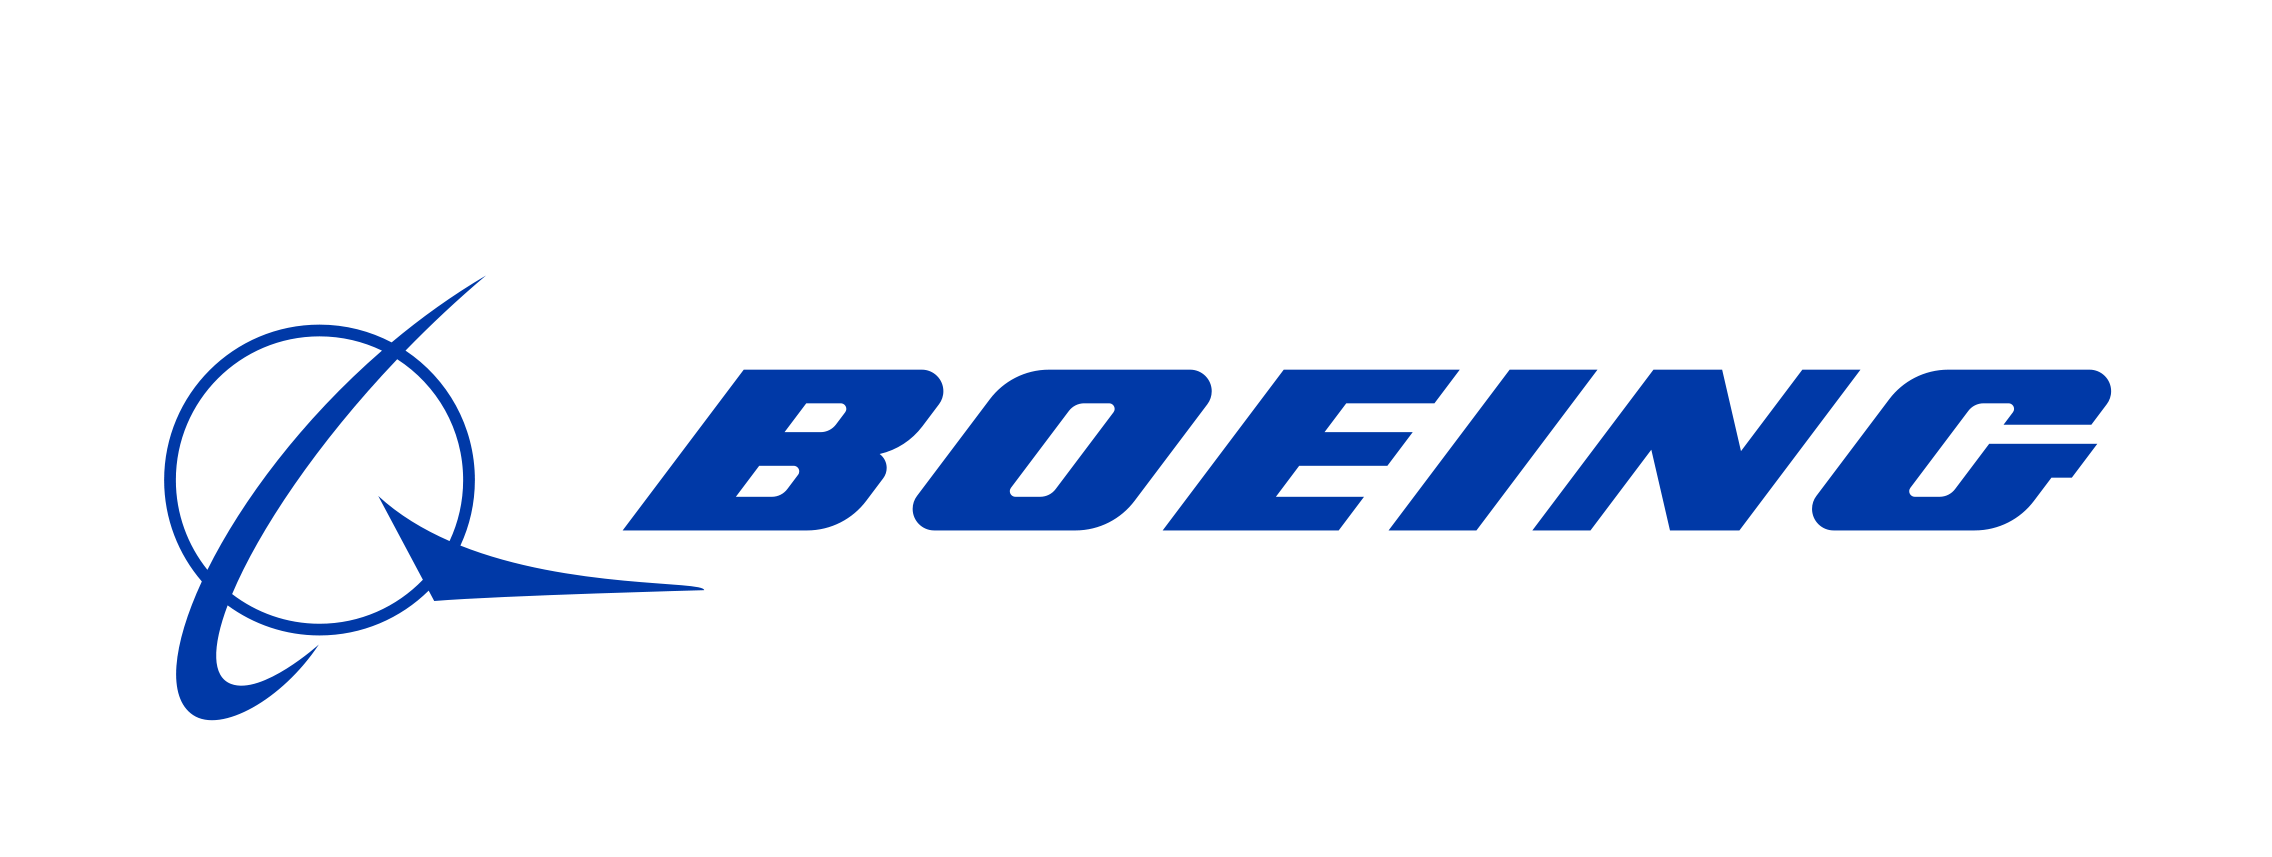 Boeing Wave Analysis – 30 March, 2020